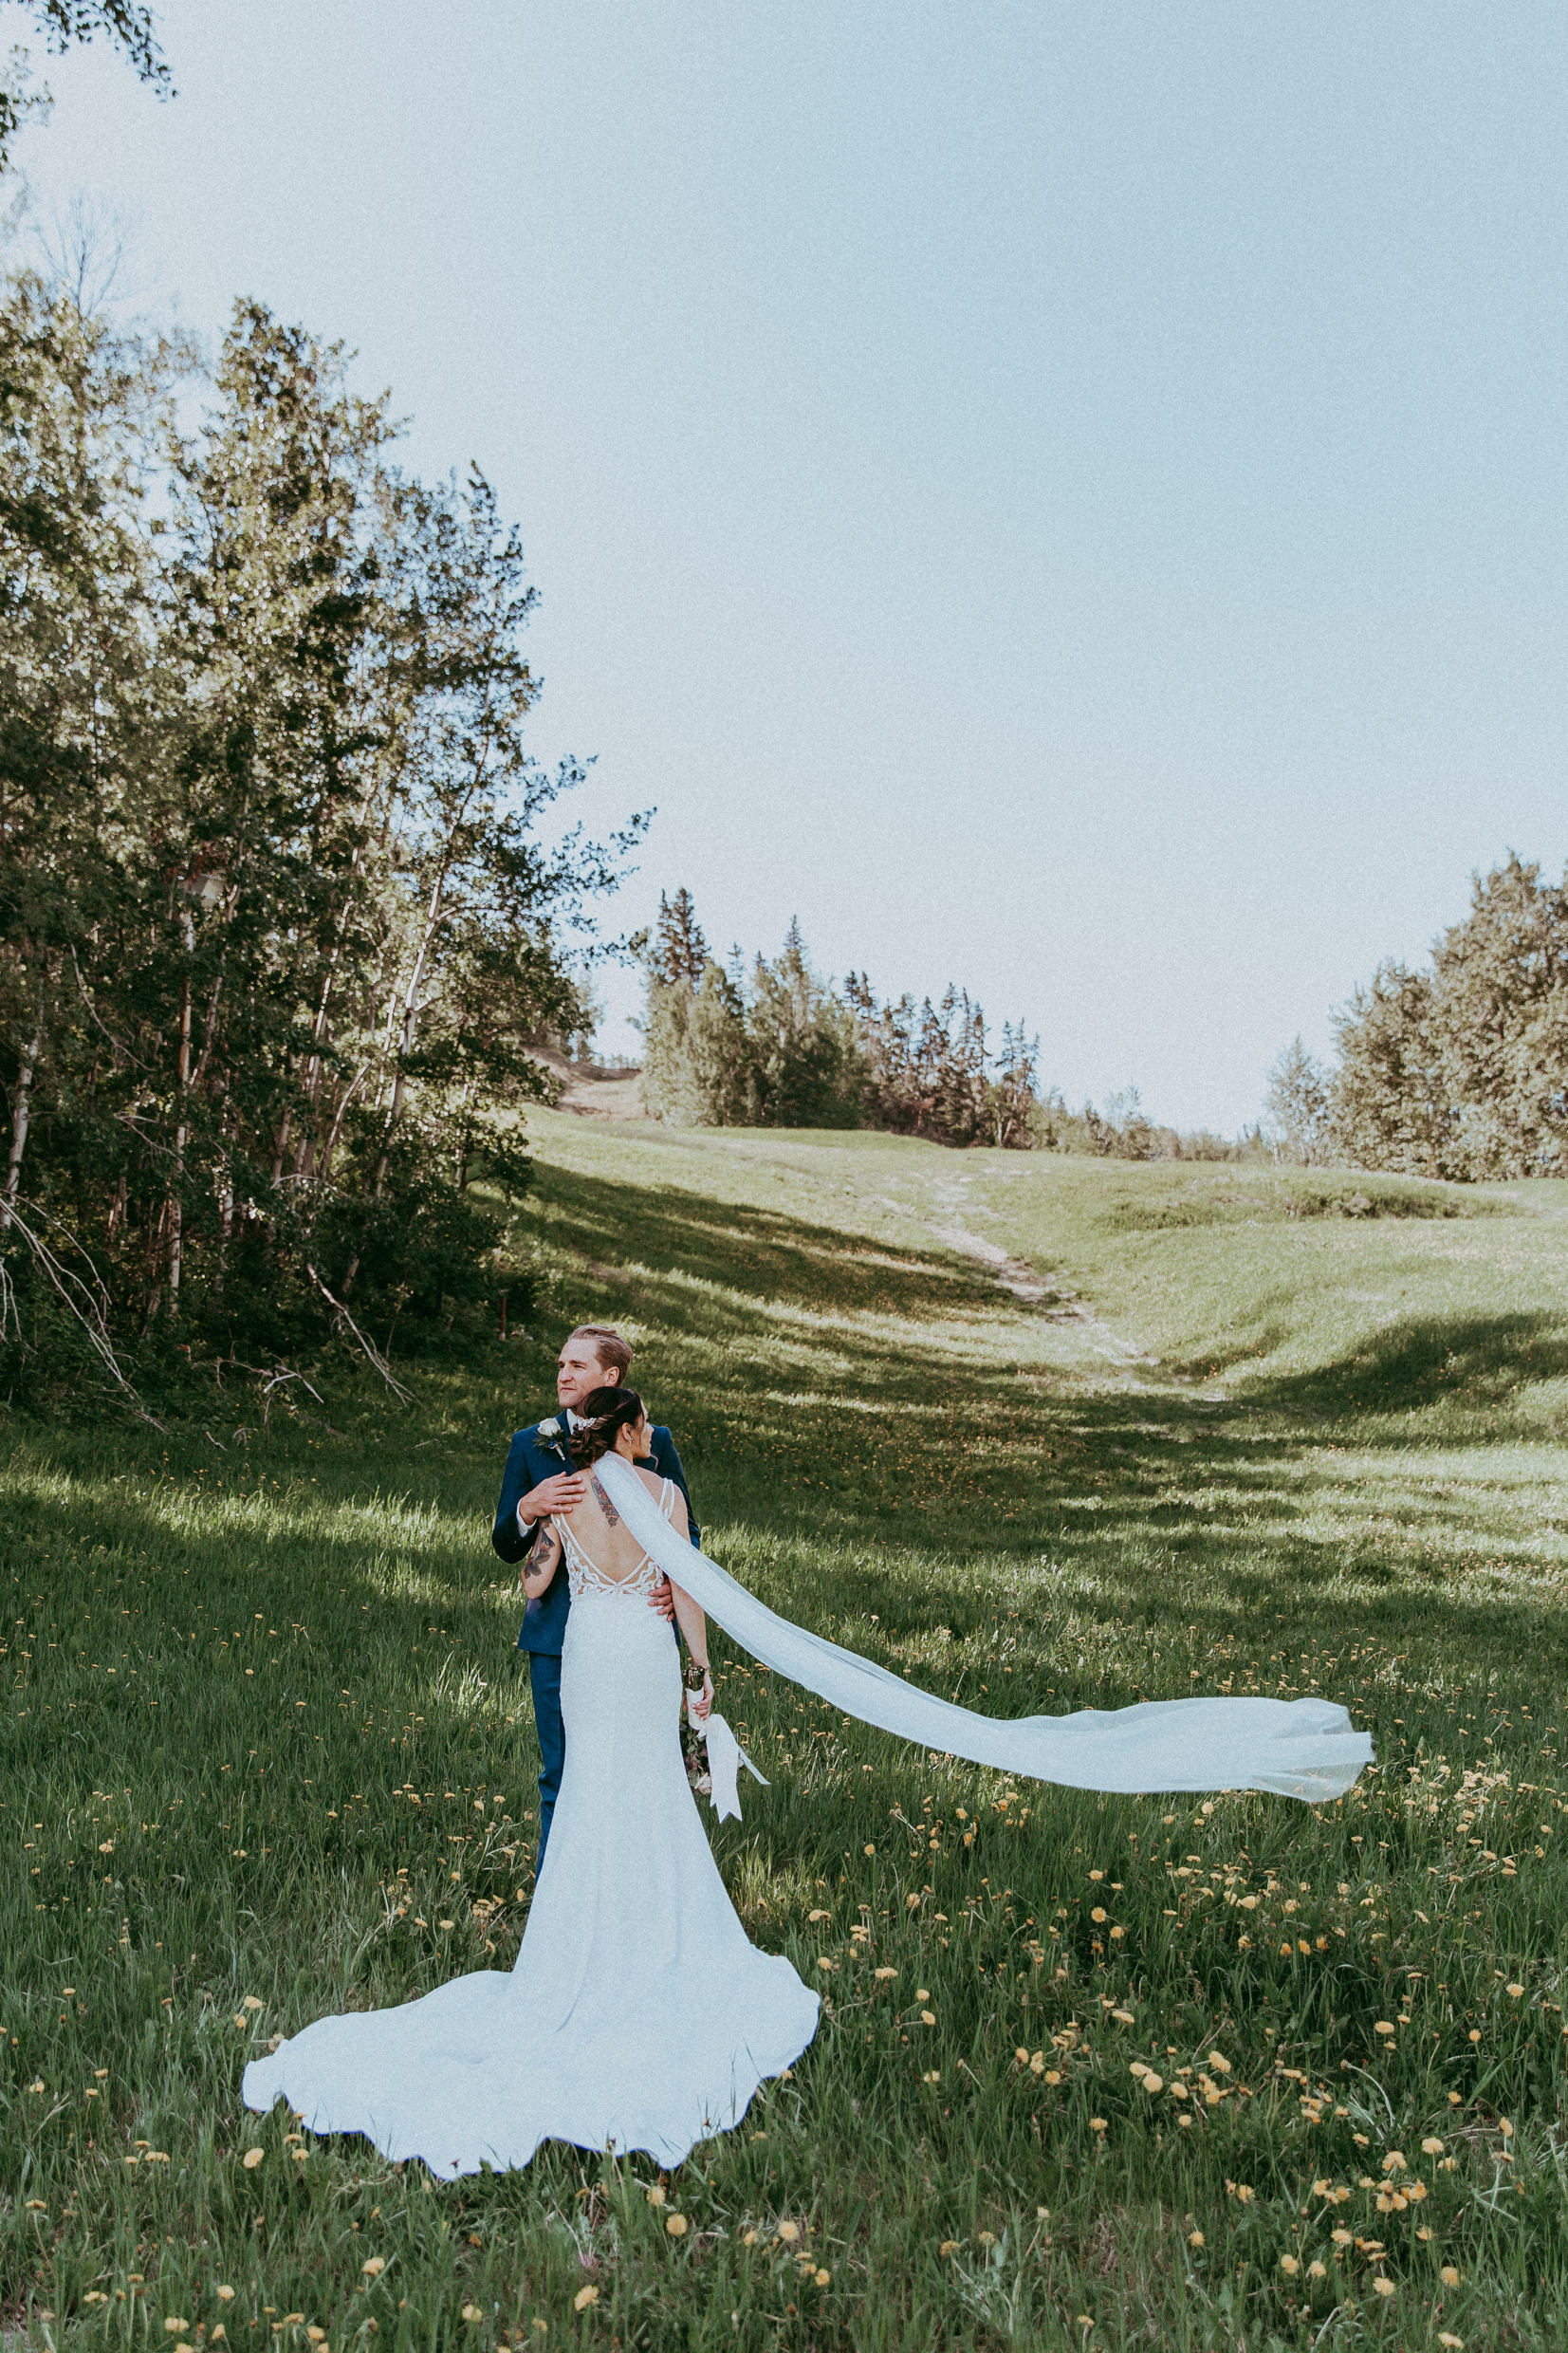 calgary wedding photographers,calgary wedding venues,canyon ski hill,canyon ski resort,canyon ski resort wedding,canyon ski wedding,red deer wedding photographers,red deer wedding venues,